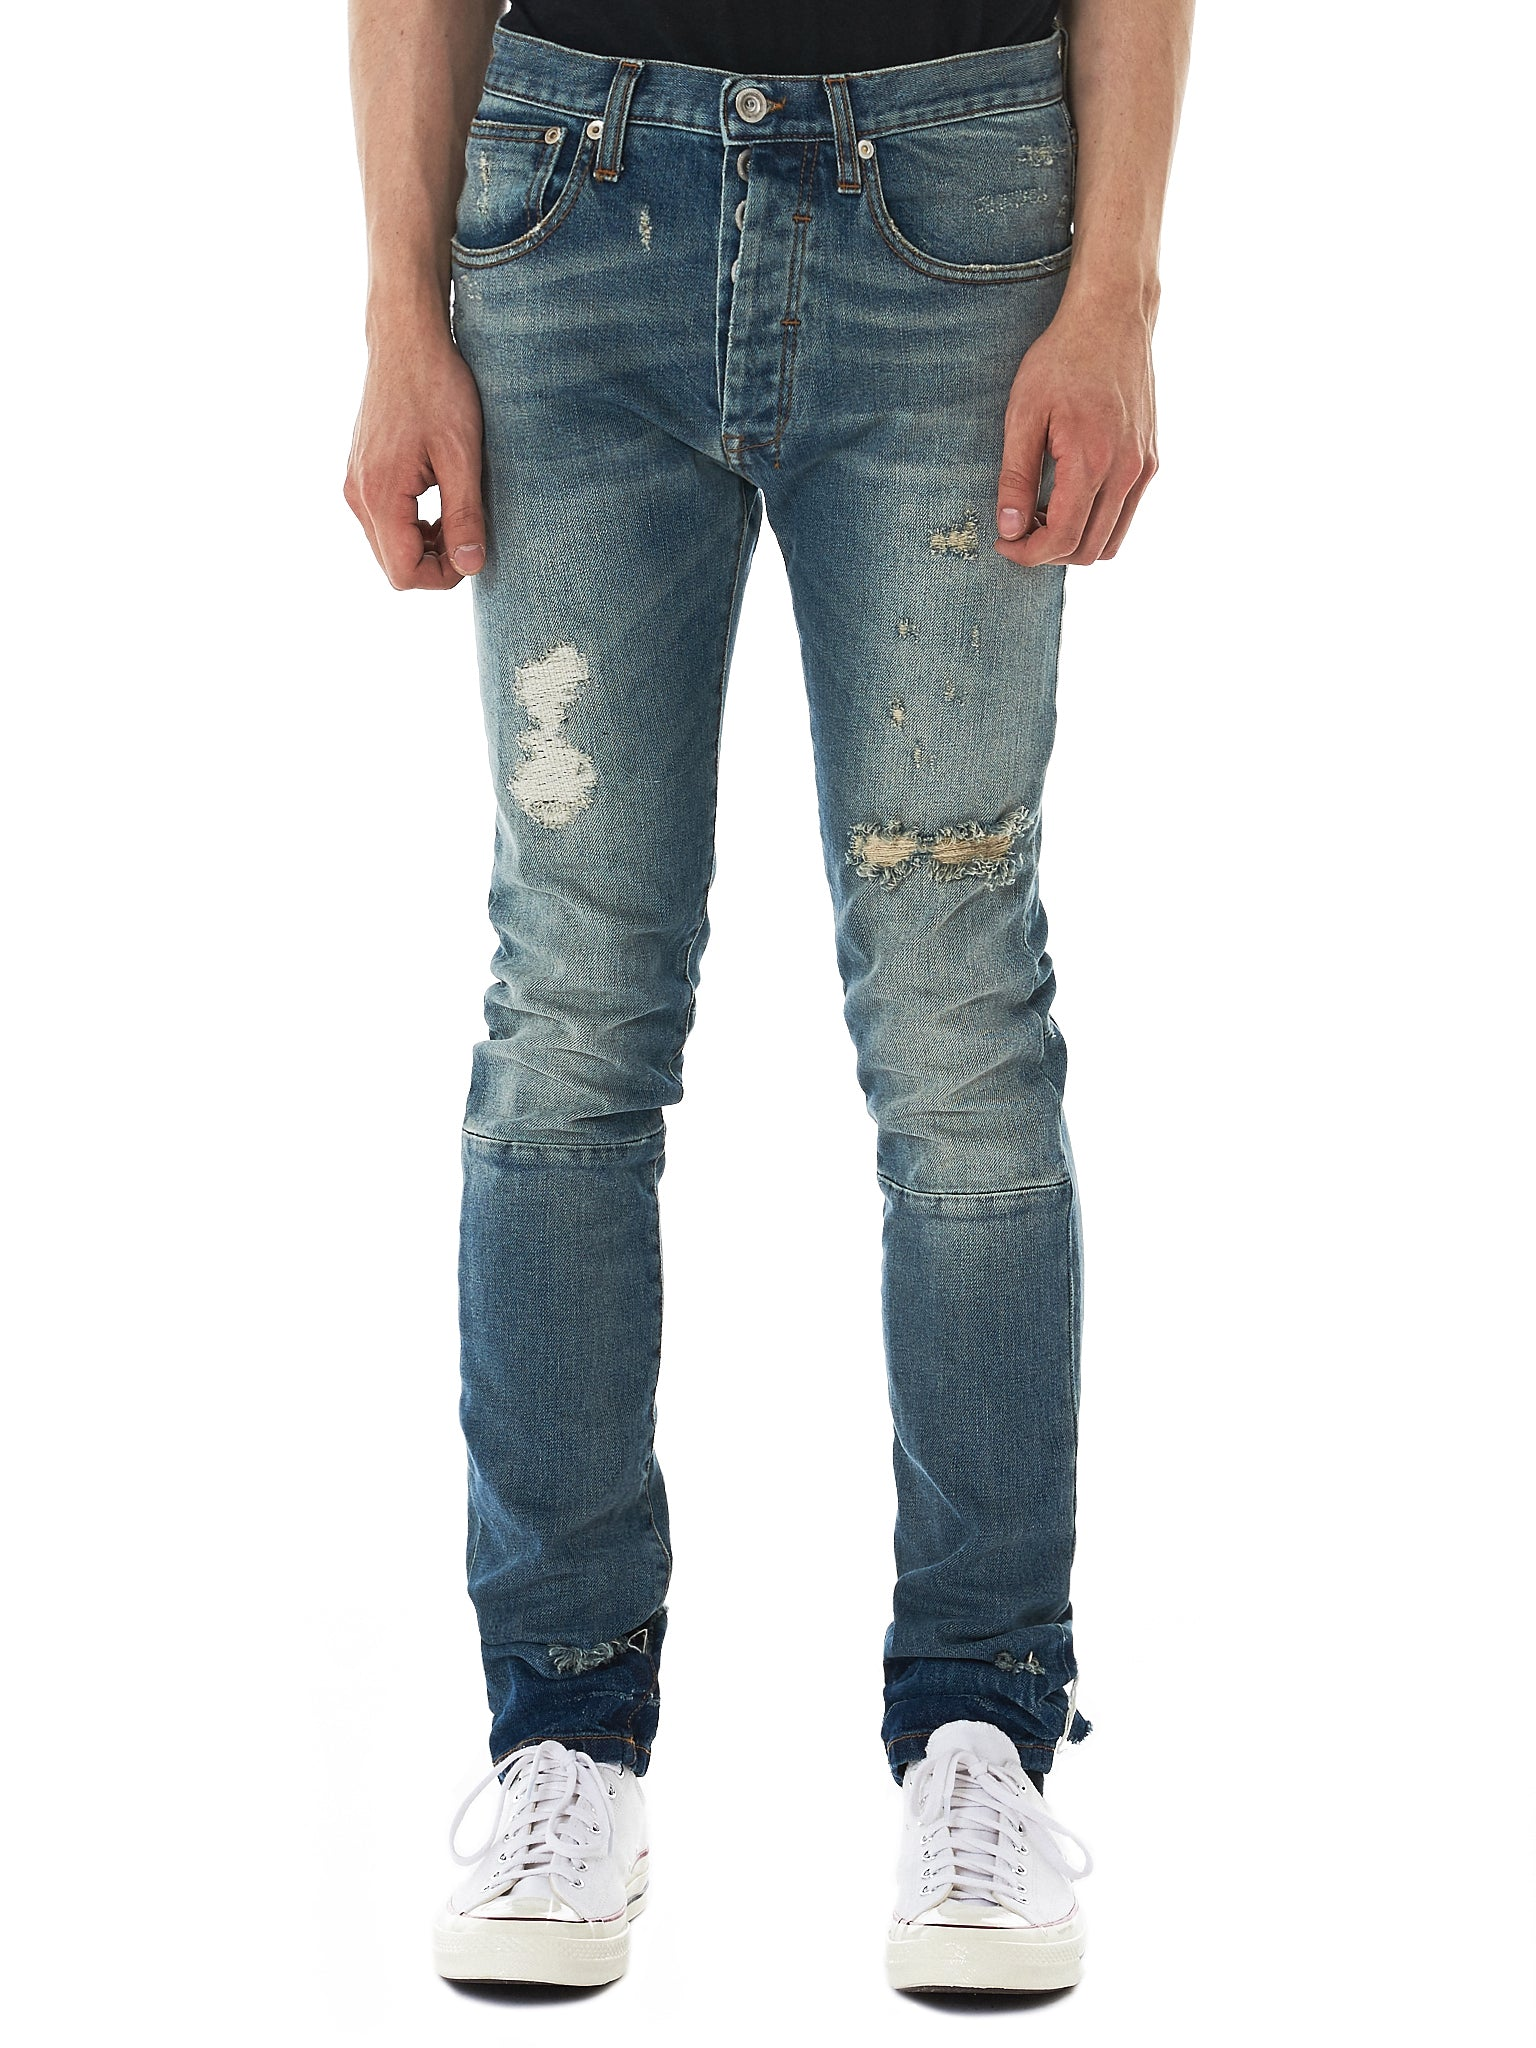 Unravel Distressed Jeans - Hlorenzo Front